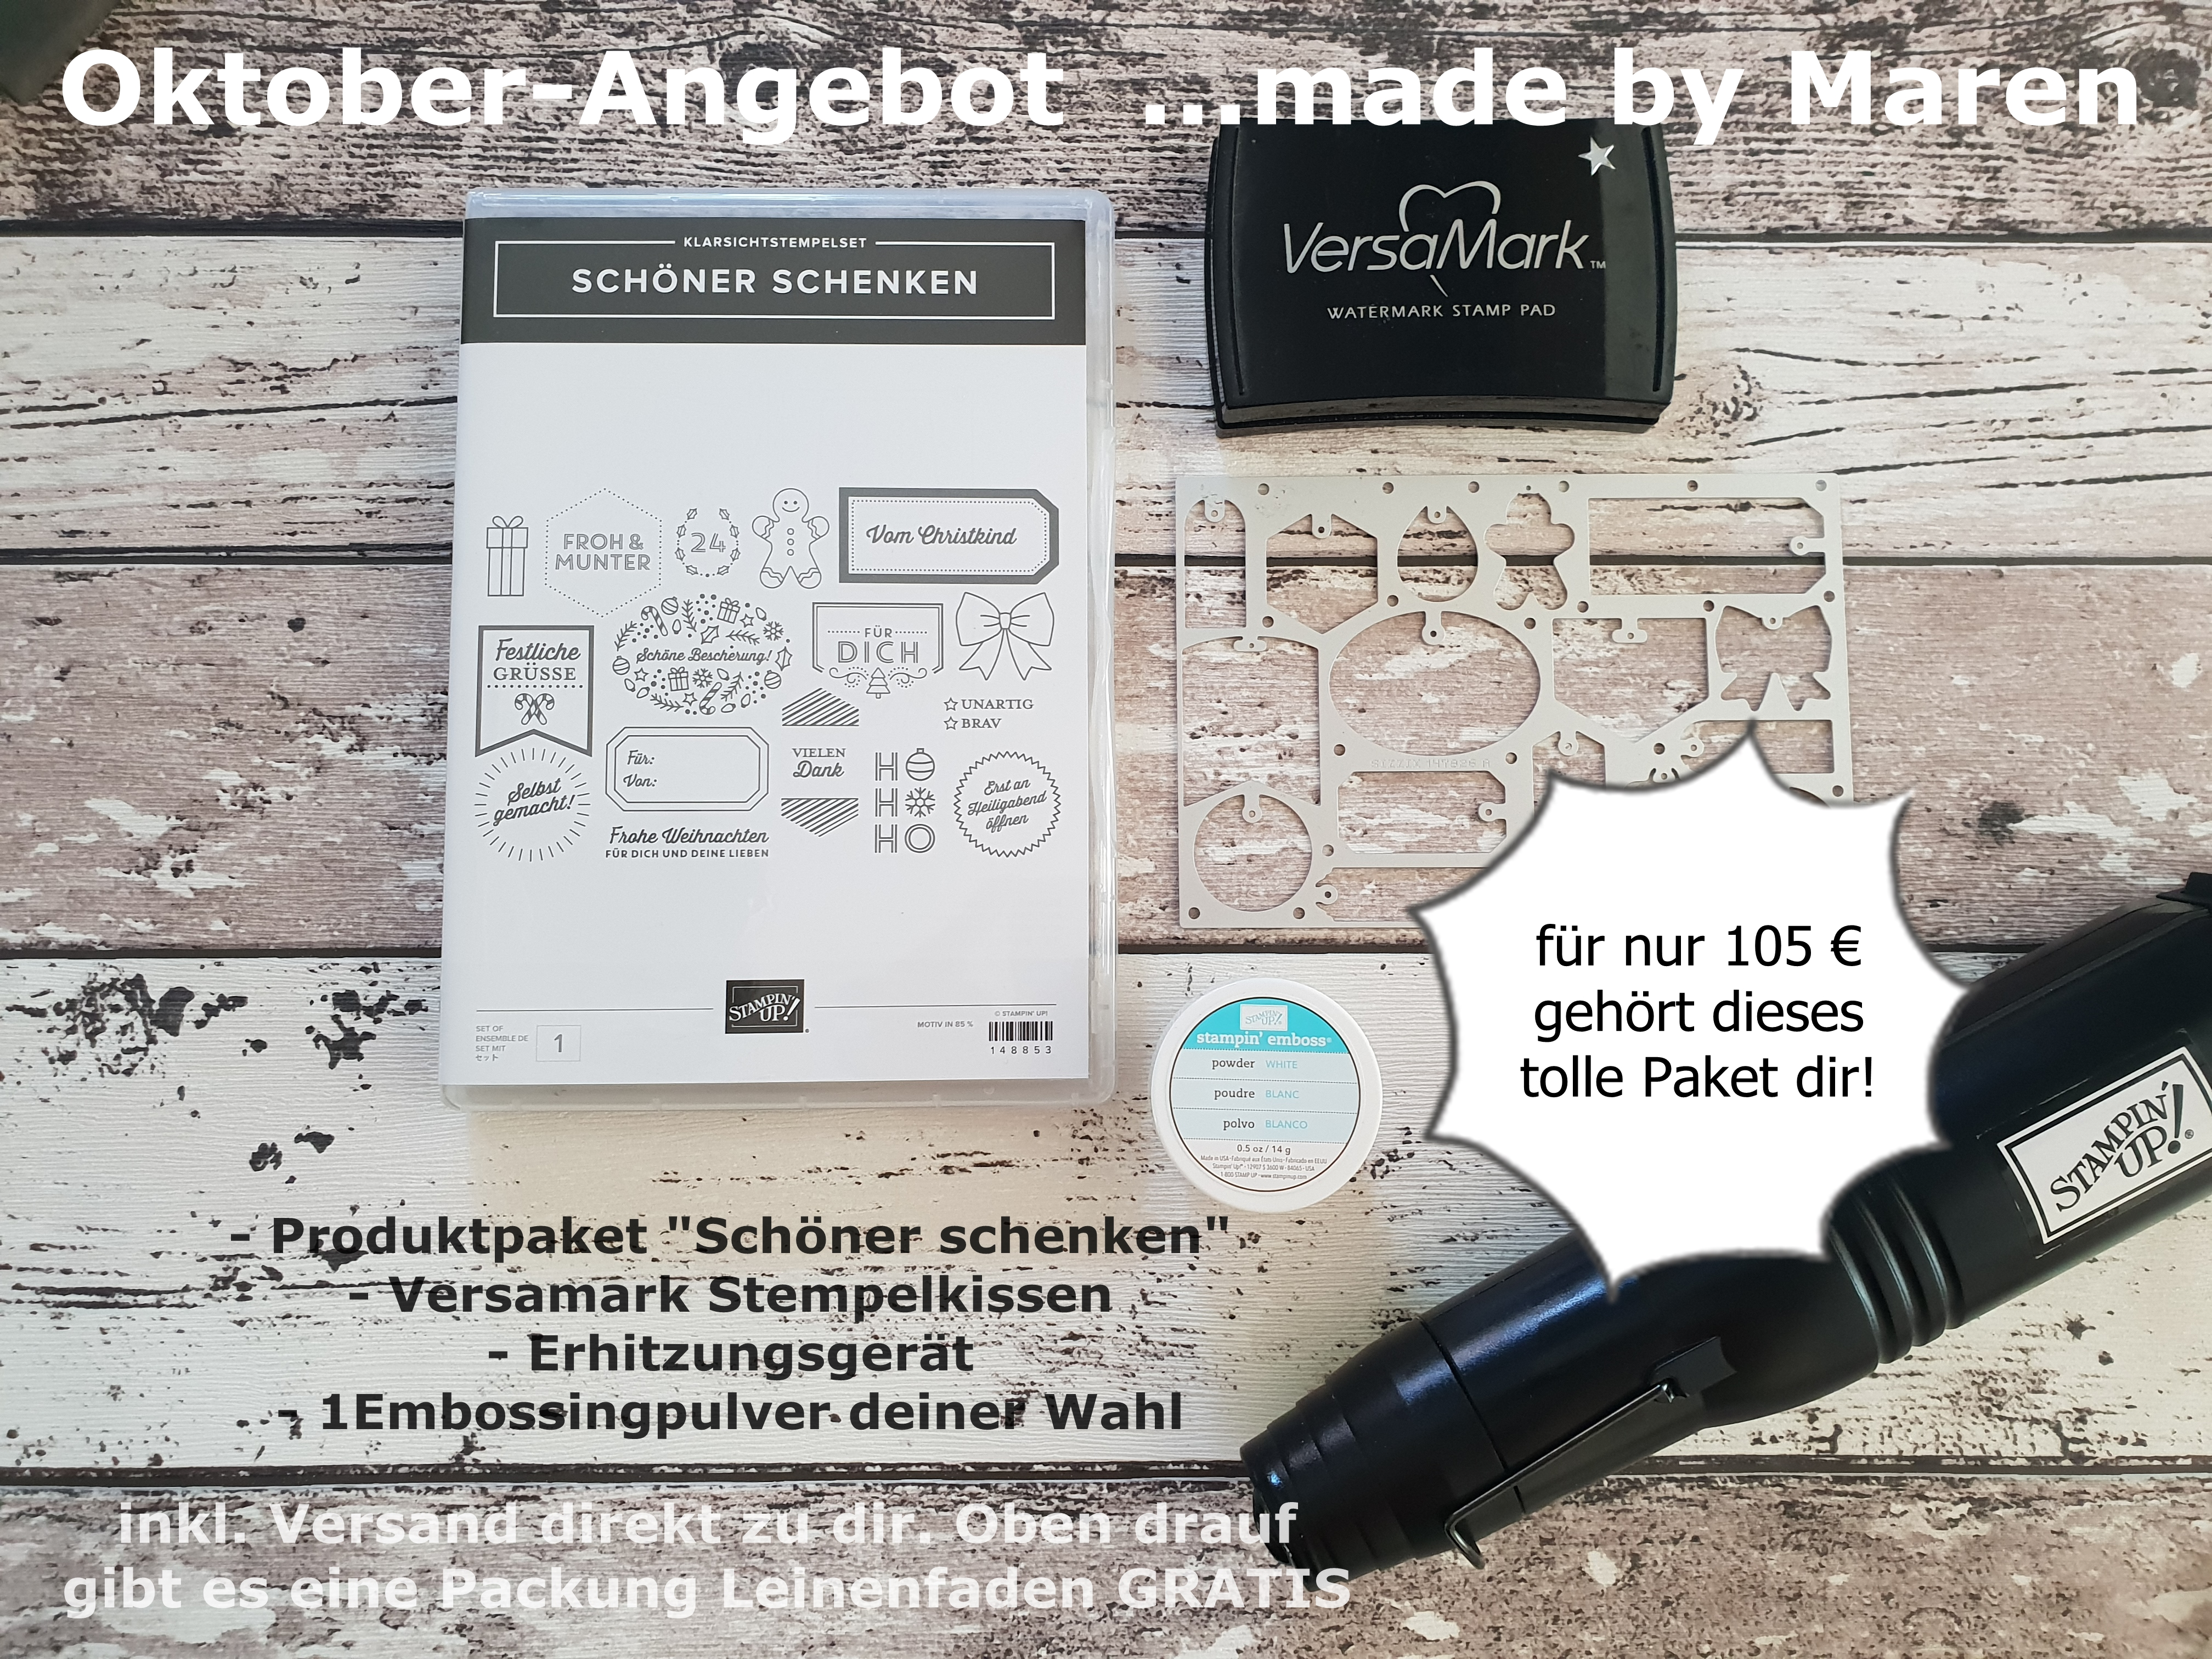 Oktoberangebot ...made by Maren